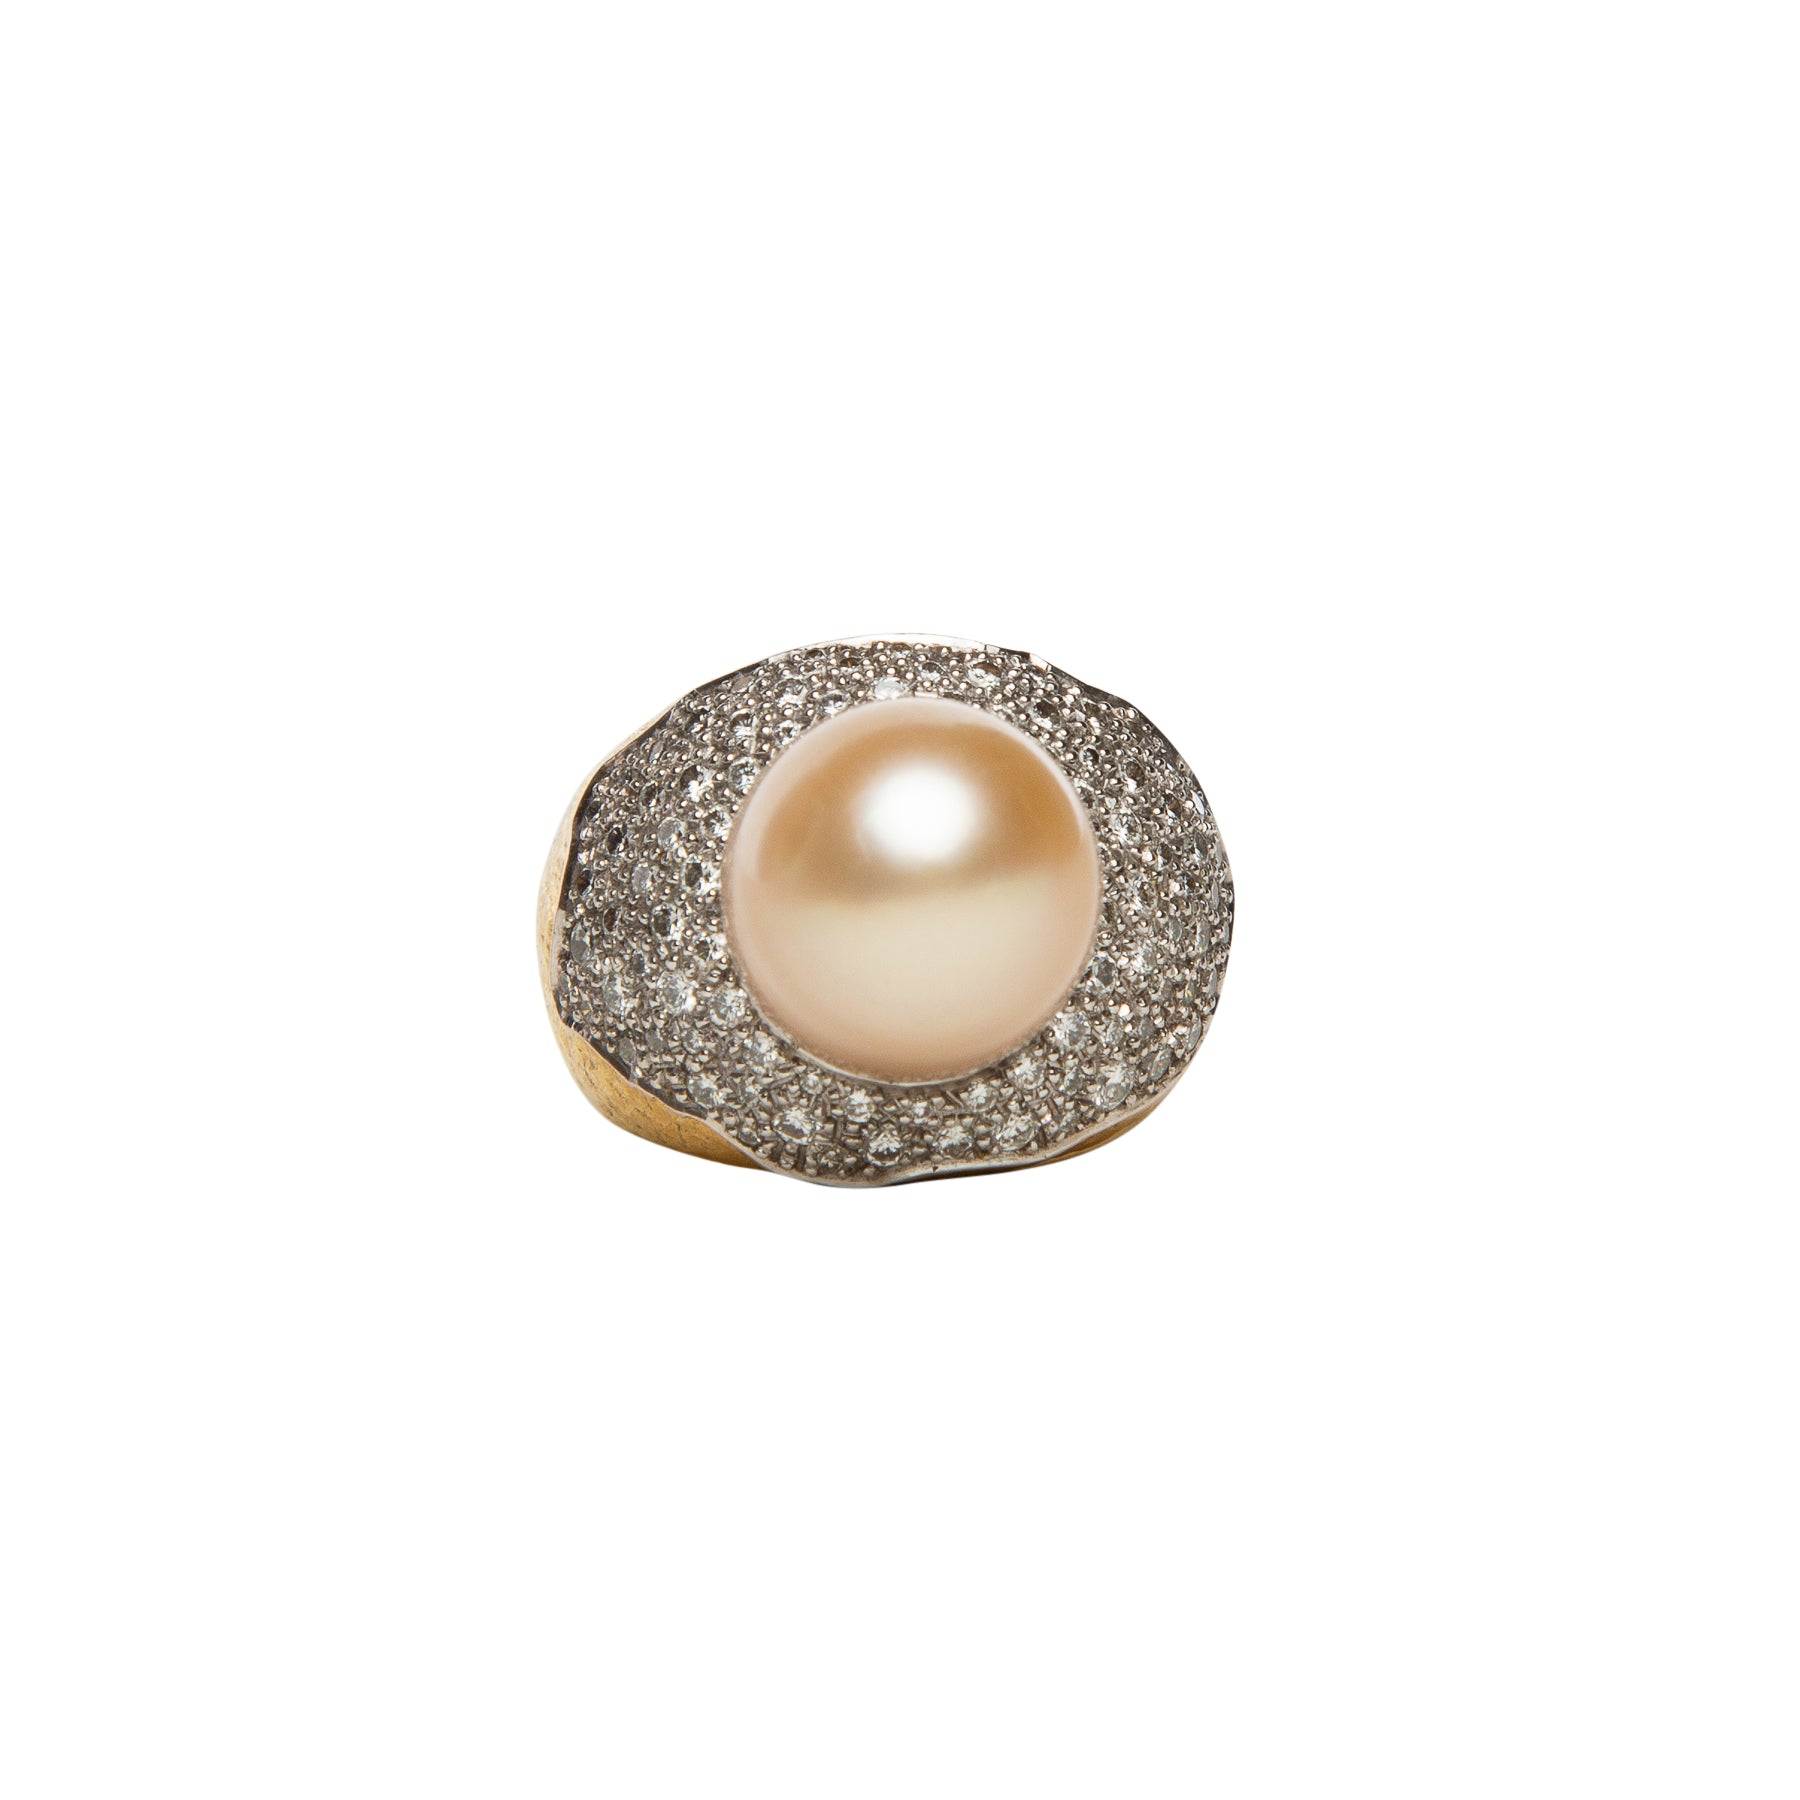 MAXFIELD PRIVATE COLLECTION | 1970'S SOUTH SEA PEARL RING BY ANDREW GRIMA